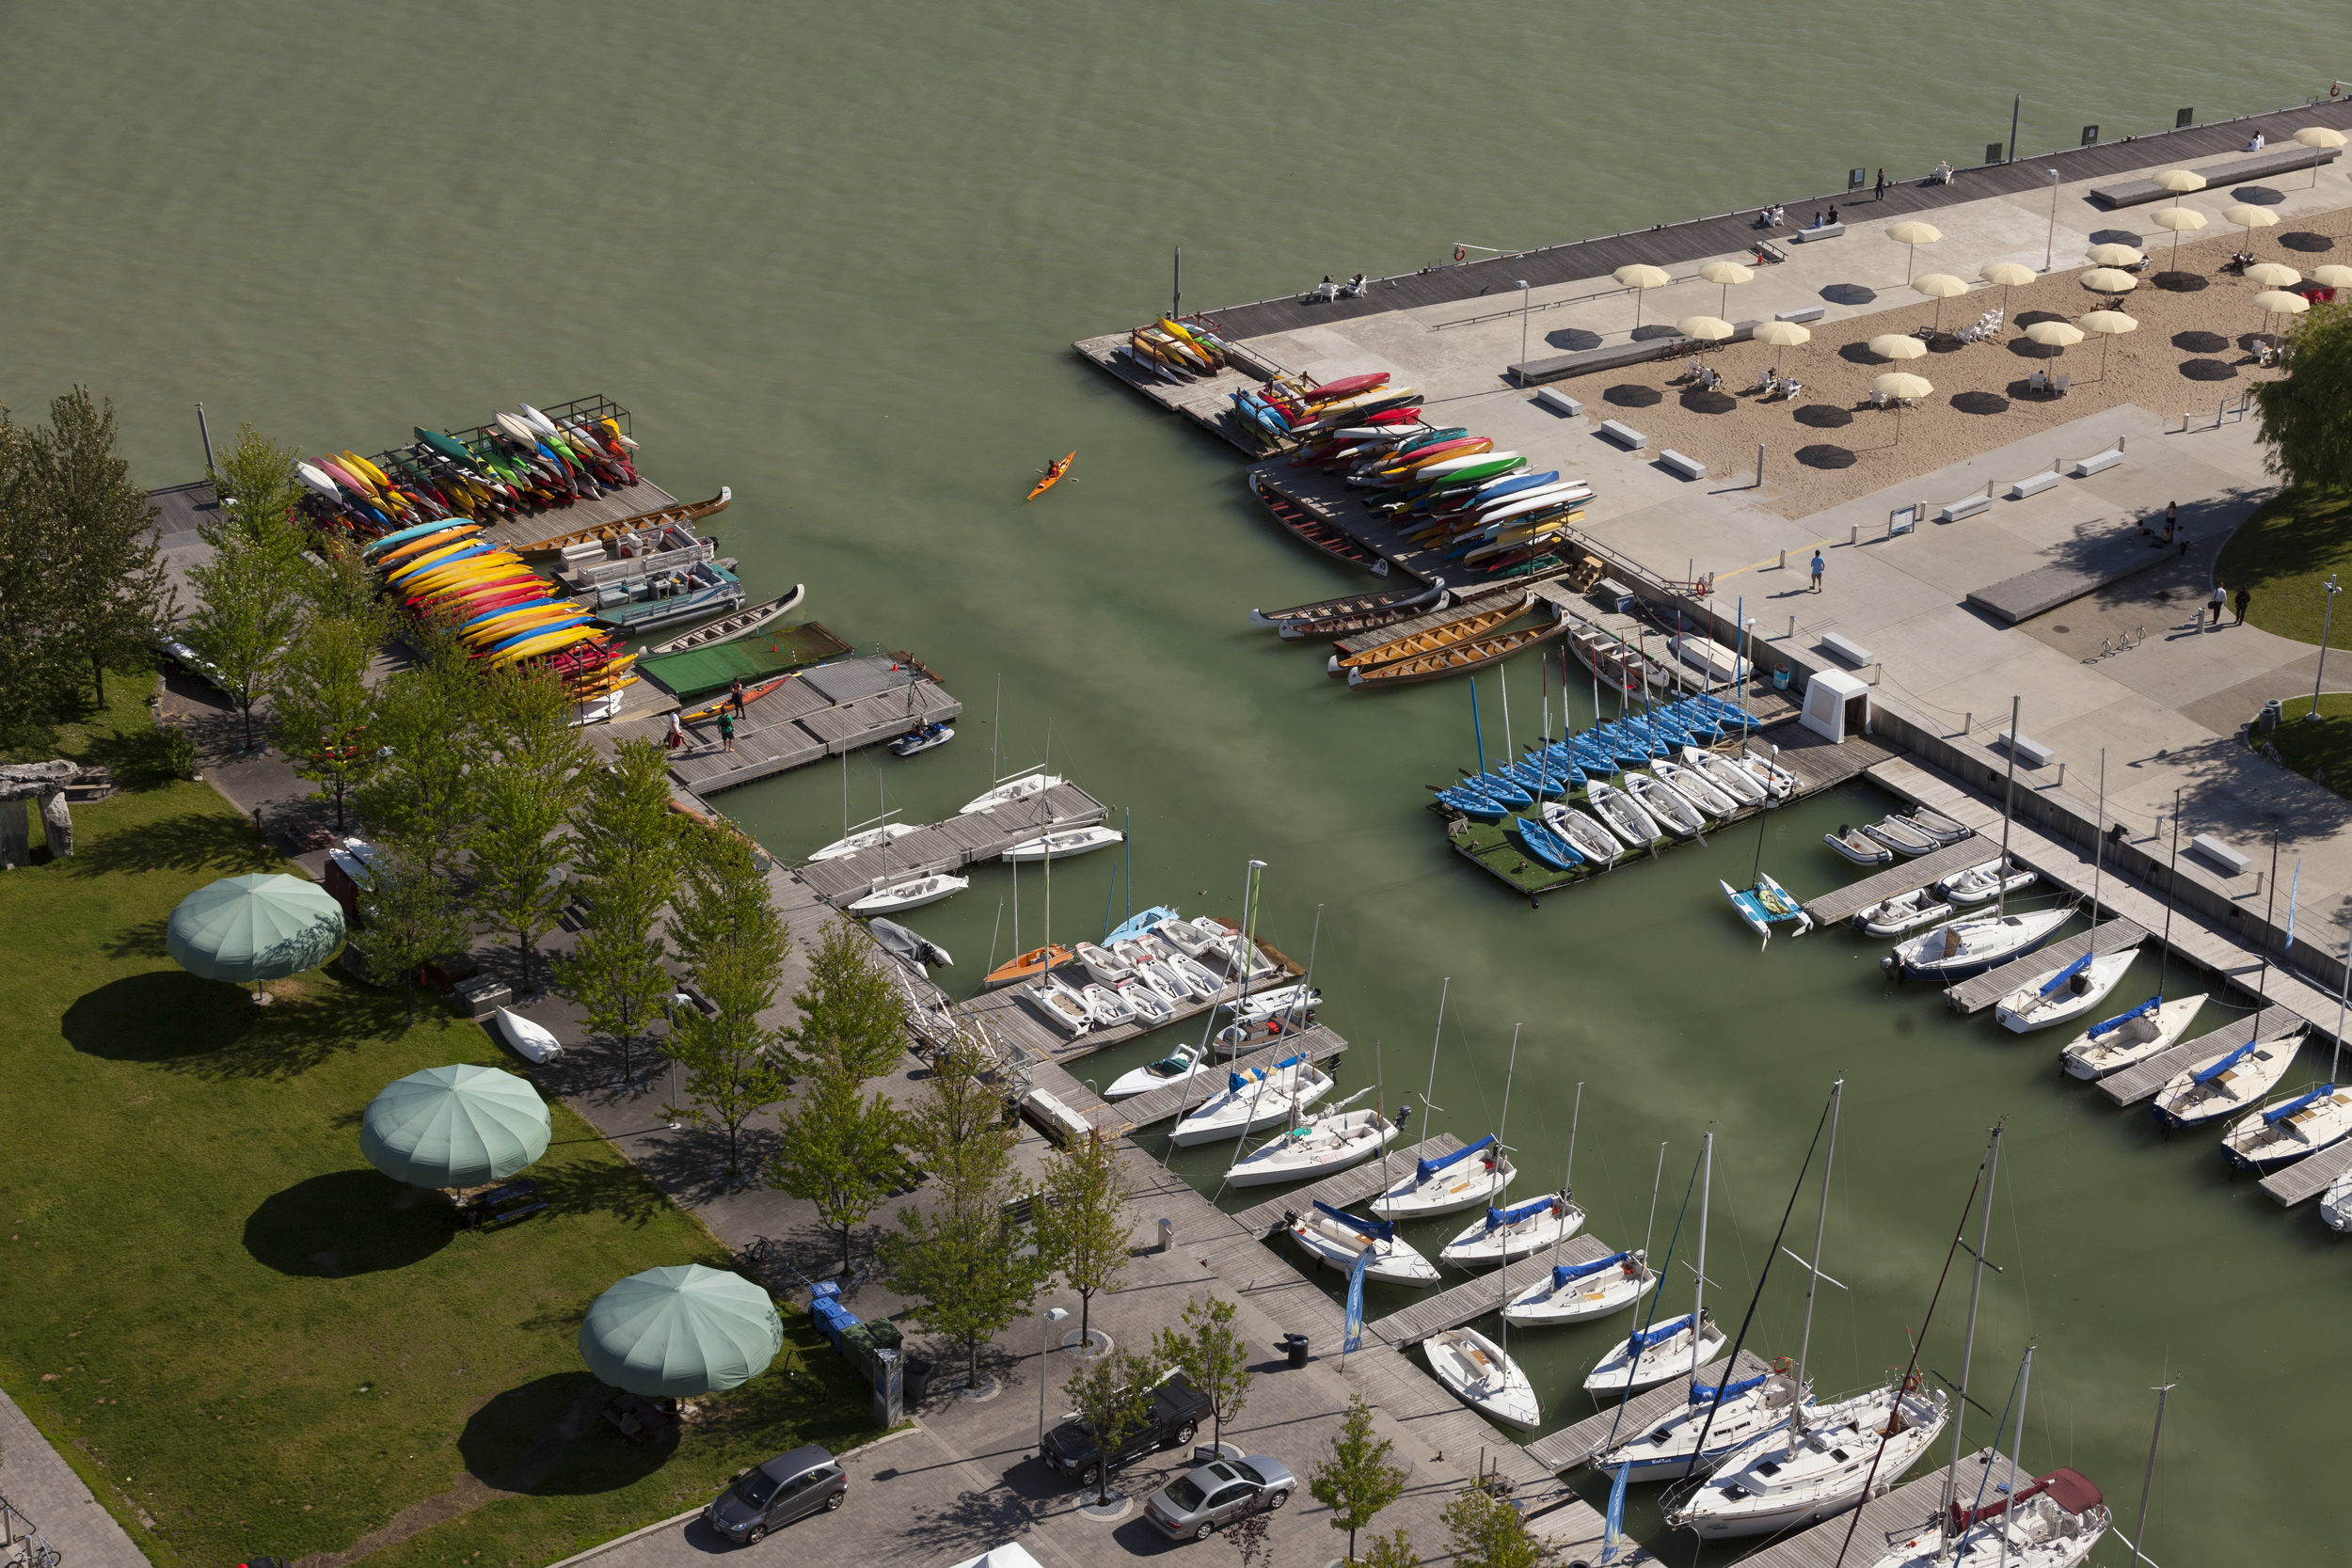 A combined sewer overflow (CSO) empties into the Toronto Harbour at Rees Street. Photo by Jim Panos.